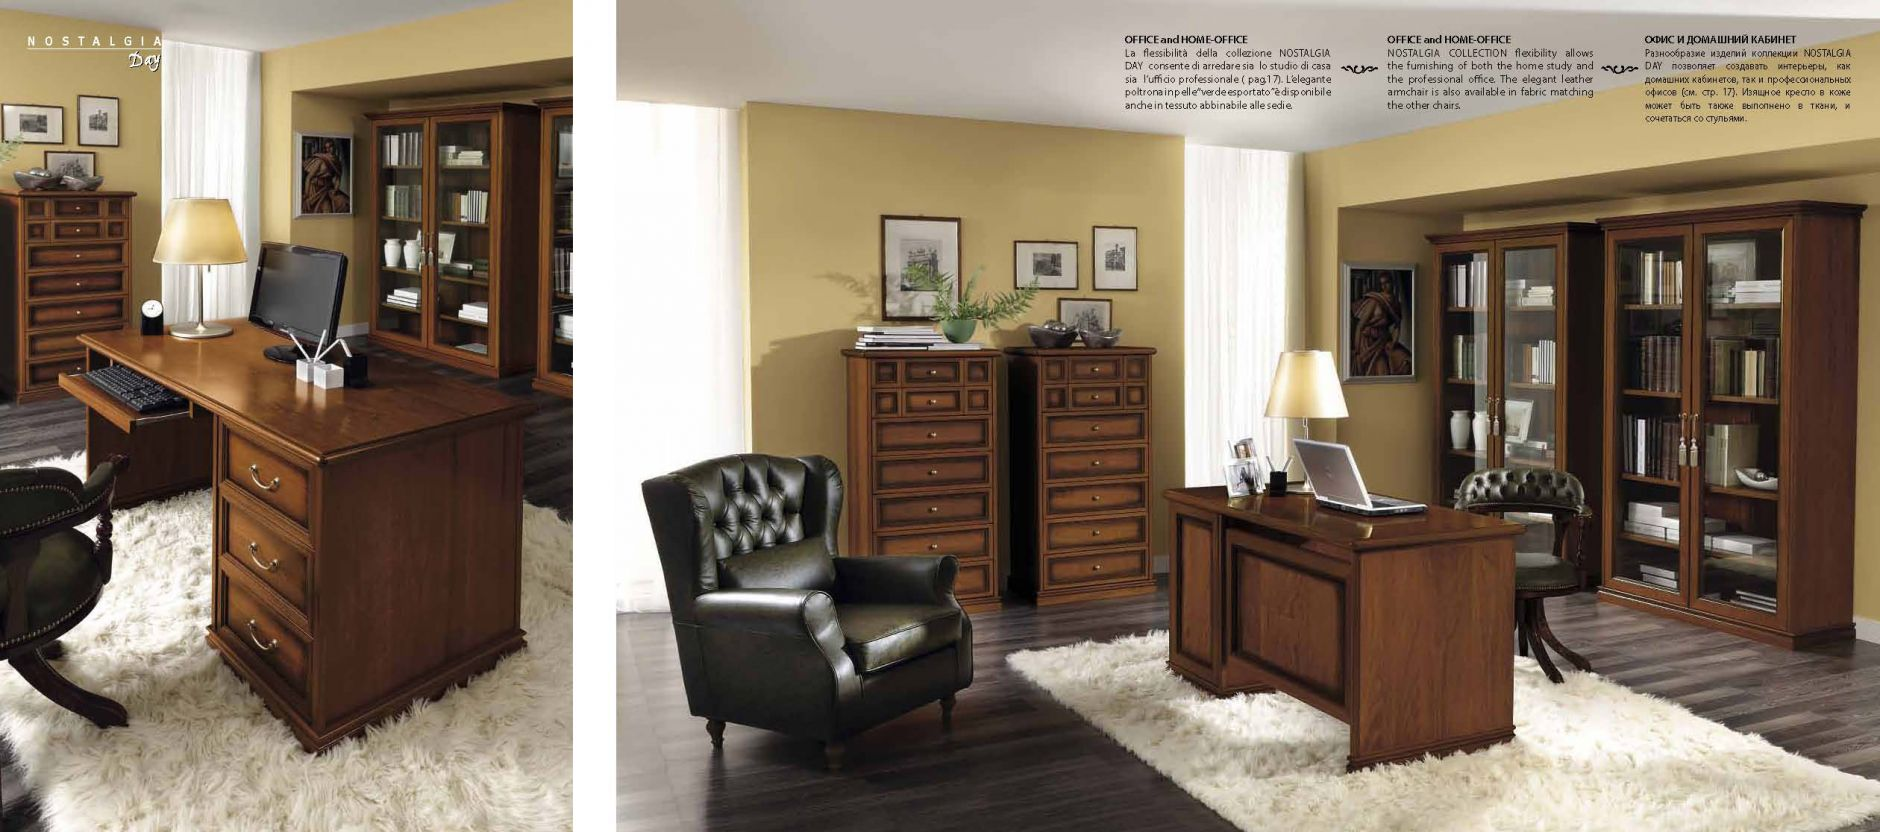 b rotische b ro m bel camelgroup serie nostalgie tagdie. Black Bedroom Furniture Sets. Home Design Ideas